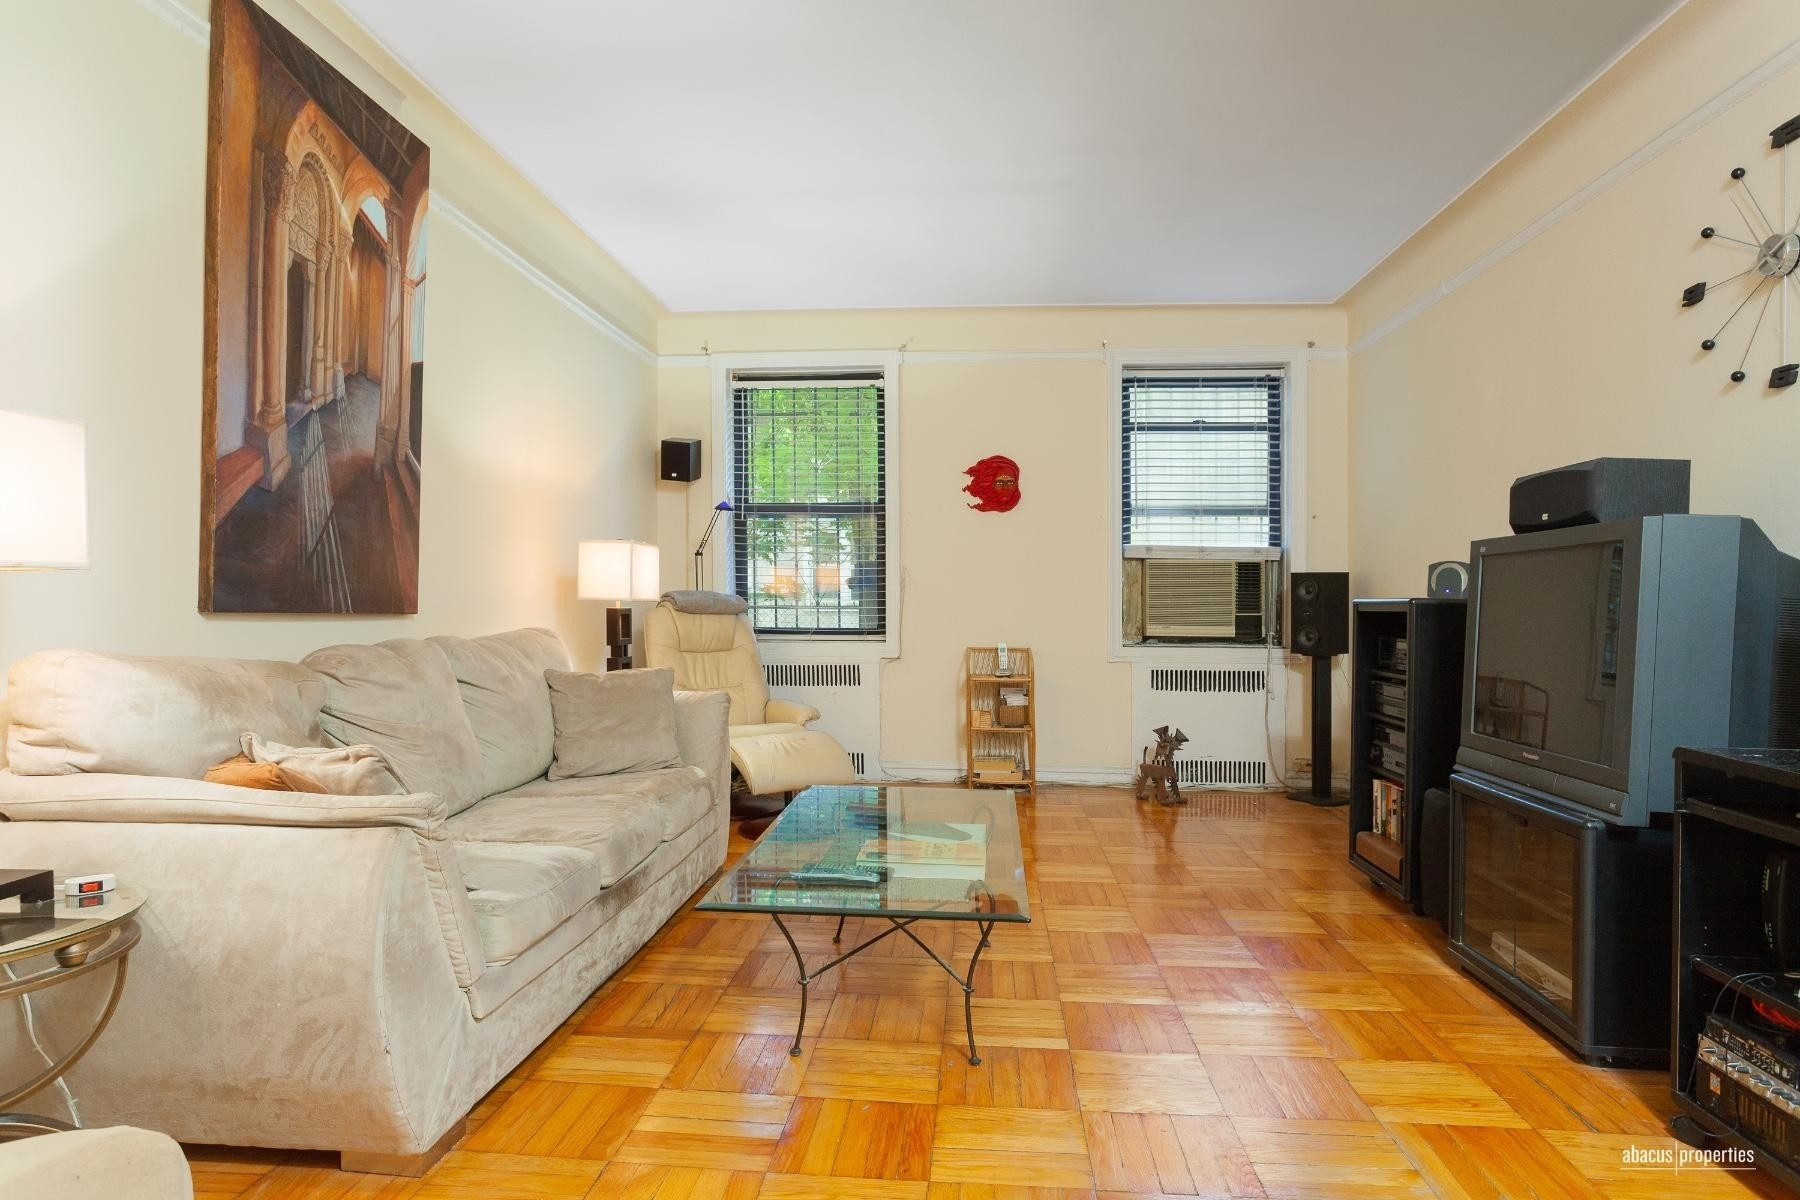 Property à 300 Ocean Pkwy, 1J Kensington, Brooklyn, NY 11218